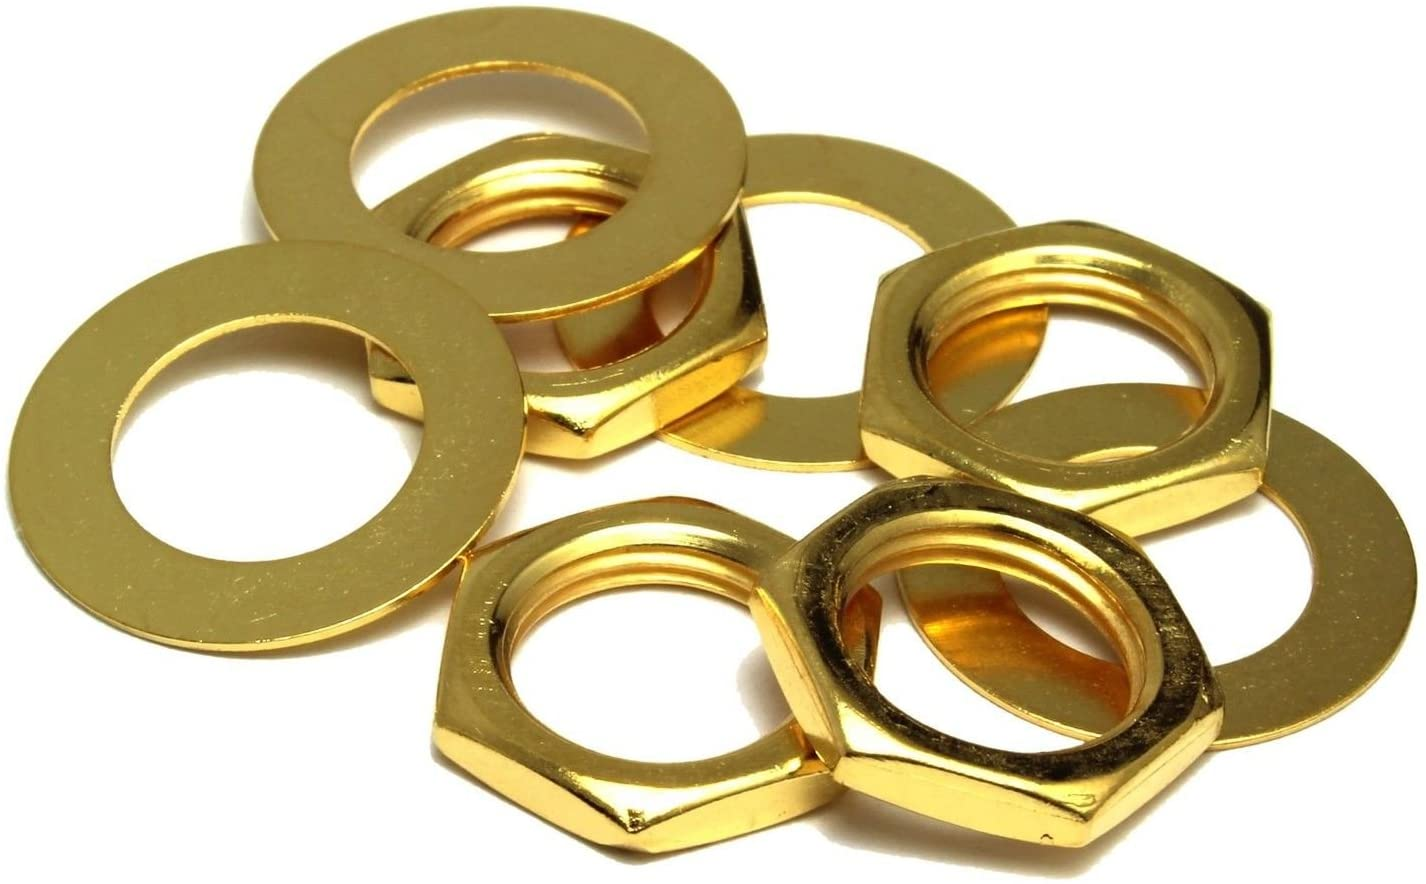 bangdan Guitar nuts and dress washers for US CTS Pots & Switchcraft Jacks, gold